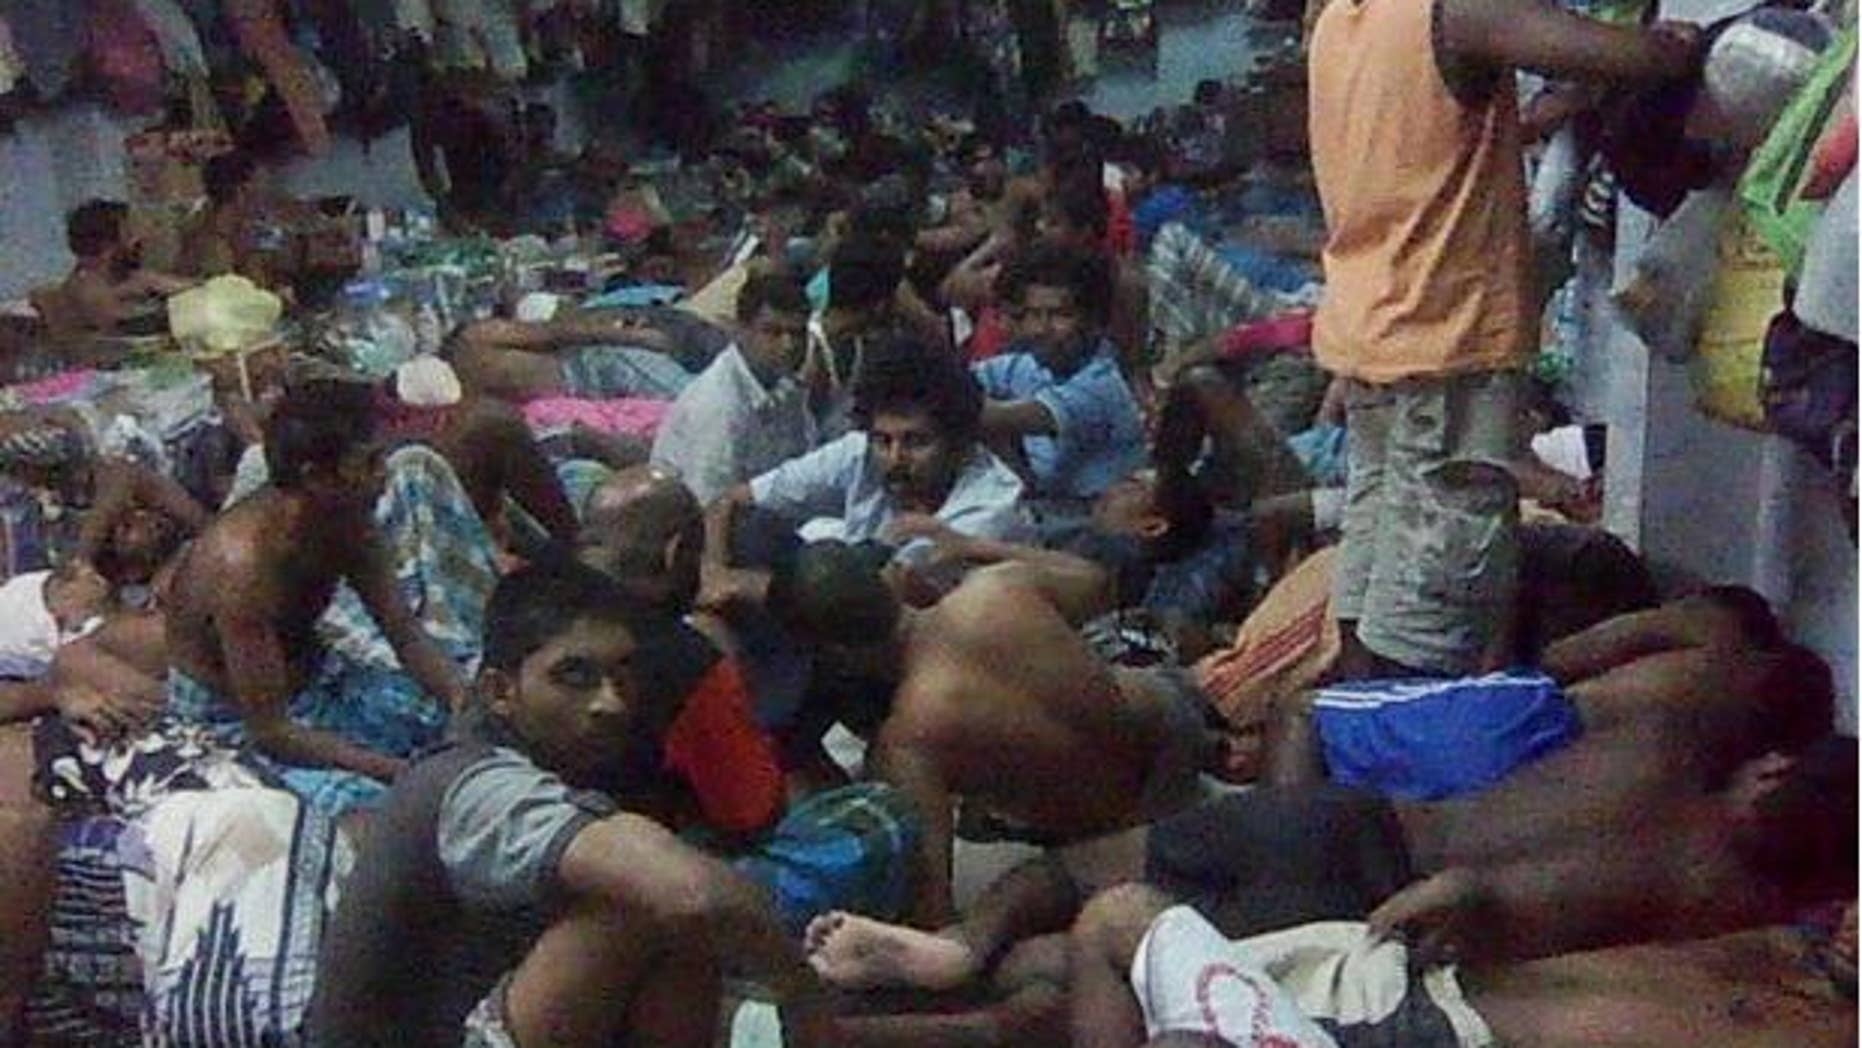 March 2015: Approximately 100 Pakistani Christian refugees sleep in one room in Thailand's Immigration Detention Center.